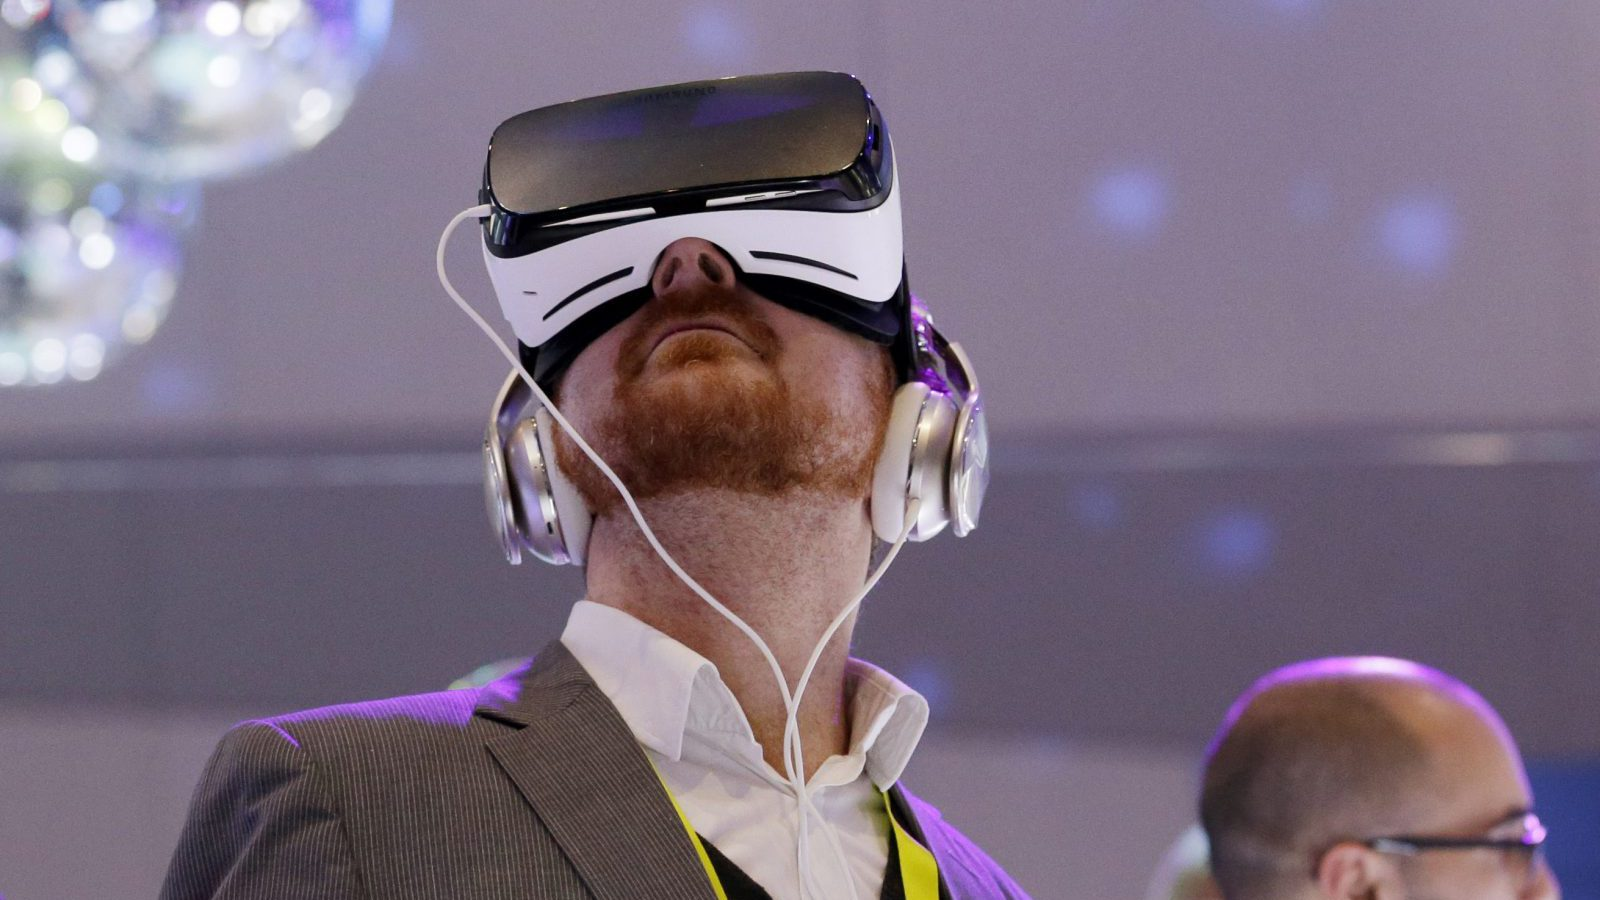 Facebook pledged more than $70 million to VR in one day.